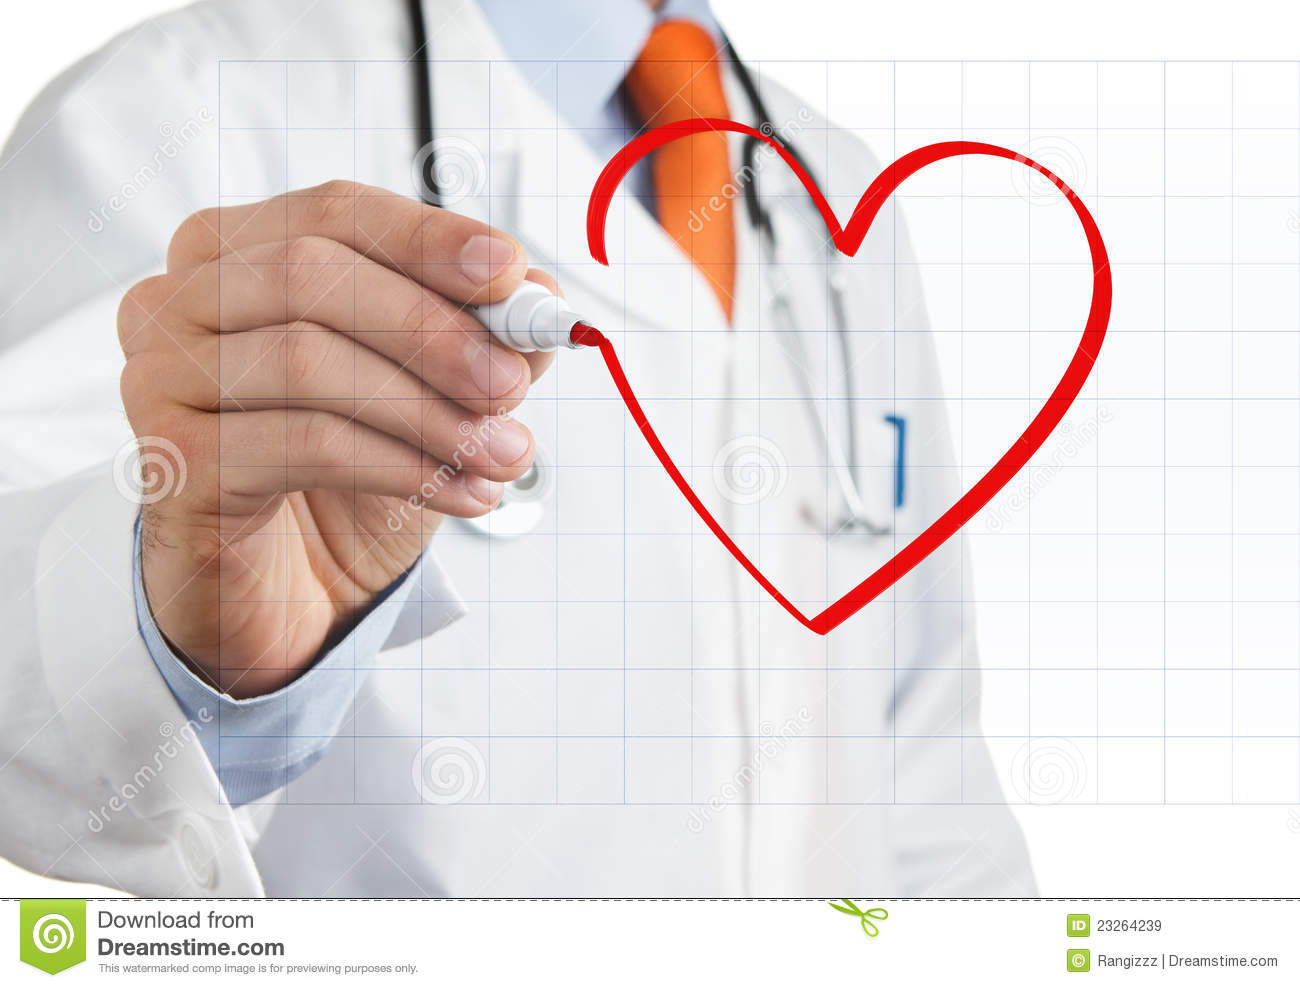 Best Healthcare Stock Photos, Pictures & Royalty-Free